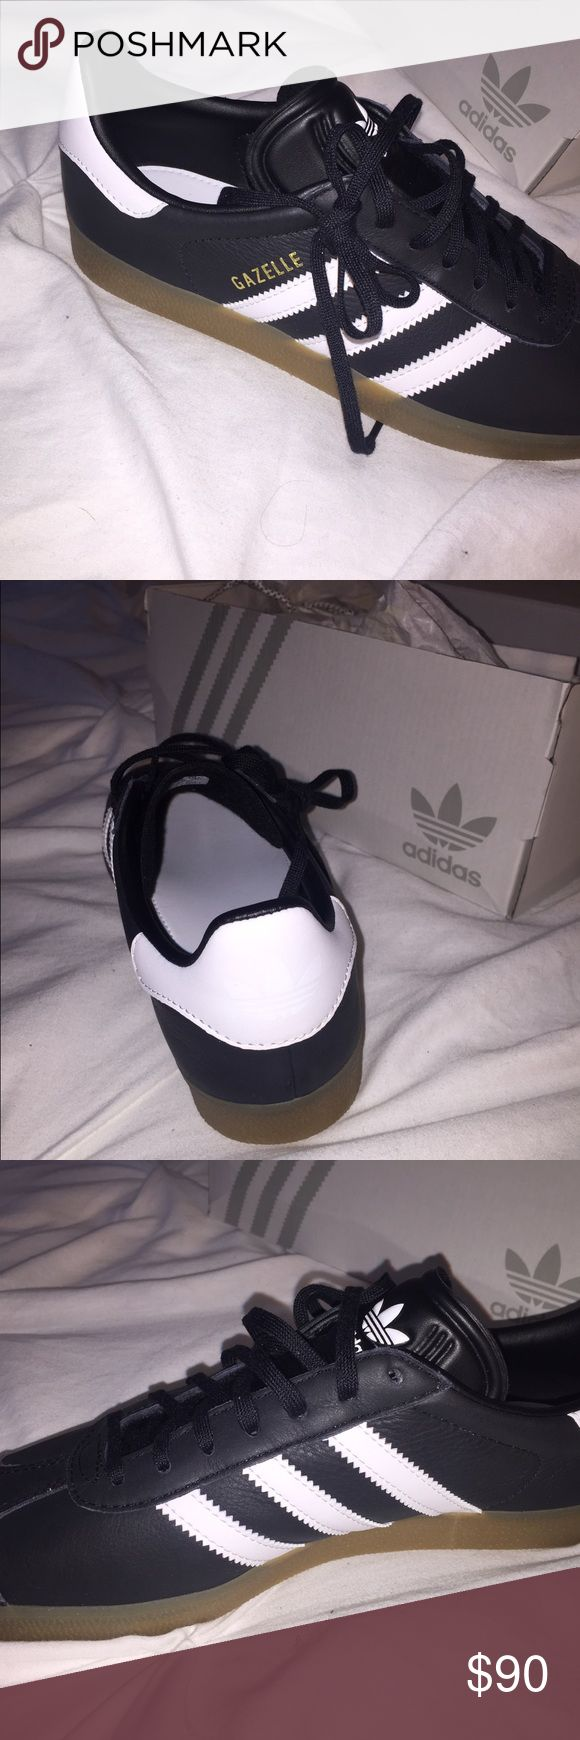 MI GAZELLE ADIDAS SHOES Black gazelle with white strips, gummy base. Brand new, never worn. Bought them a little too big and custom made them so I can not return them. Size 6 in mens. Adidas Shoes Sneakers